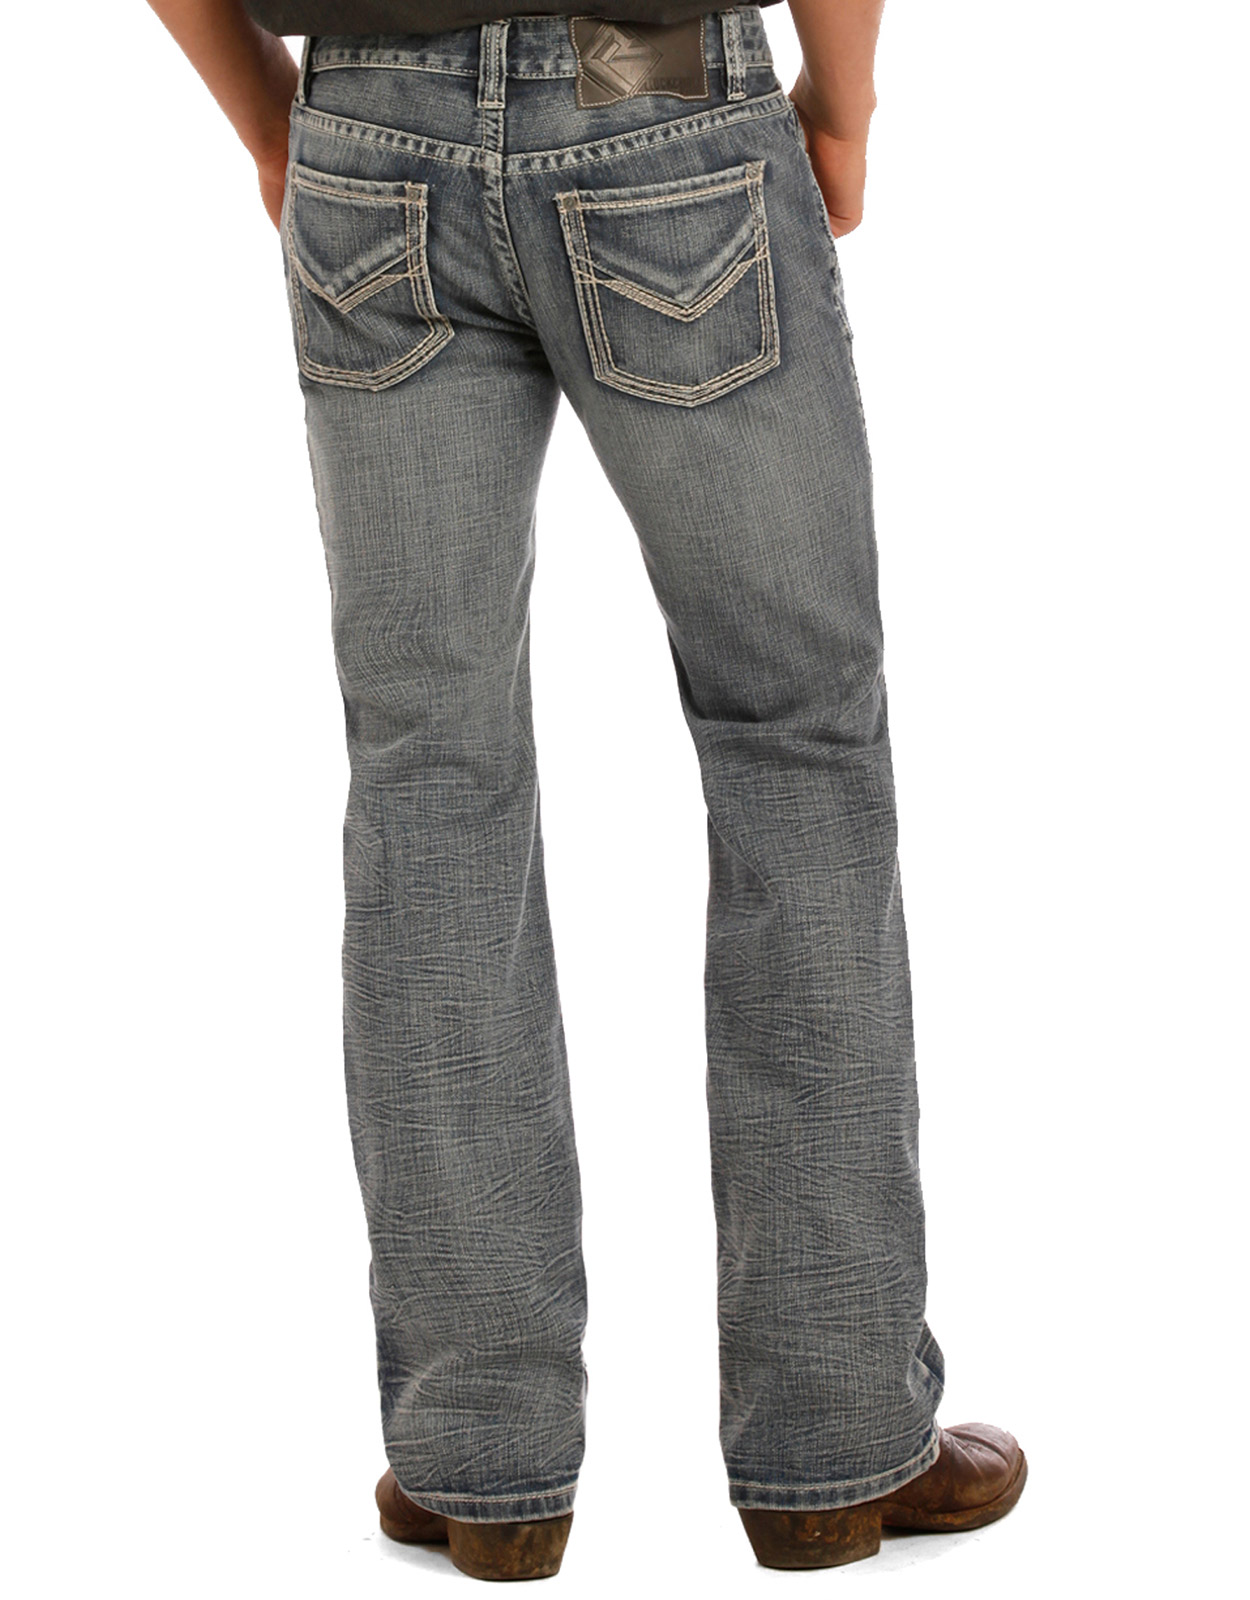 Regular fit jeans have a classic straight leg fit and are stylish, comfortable, and are always in style. Nothing beats a great pair of blue jeans. Nothing beats a great pair of blue jeans. When someone says